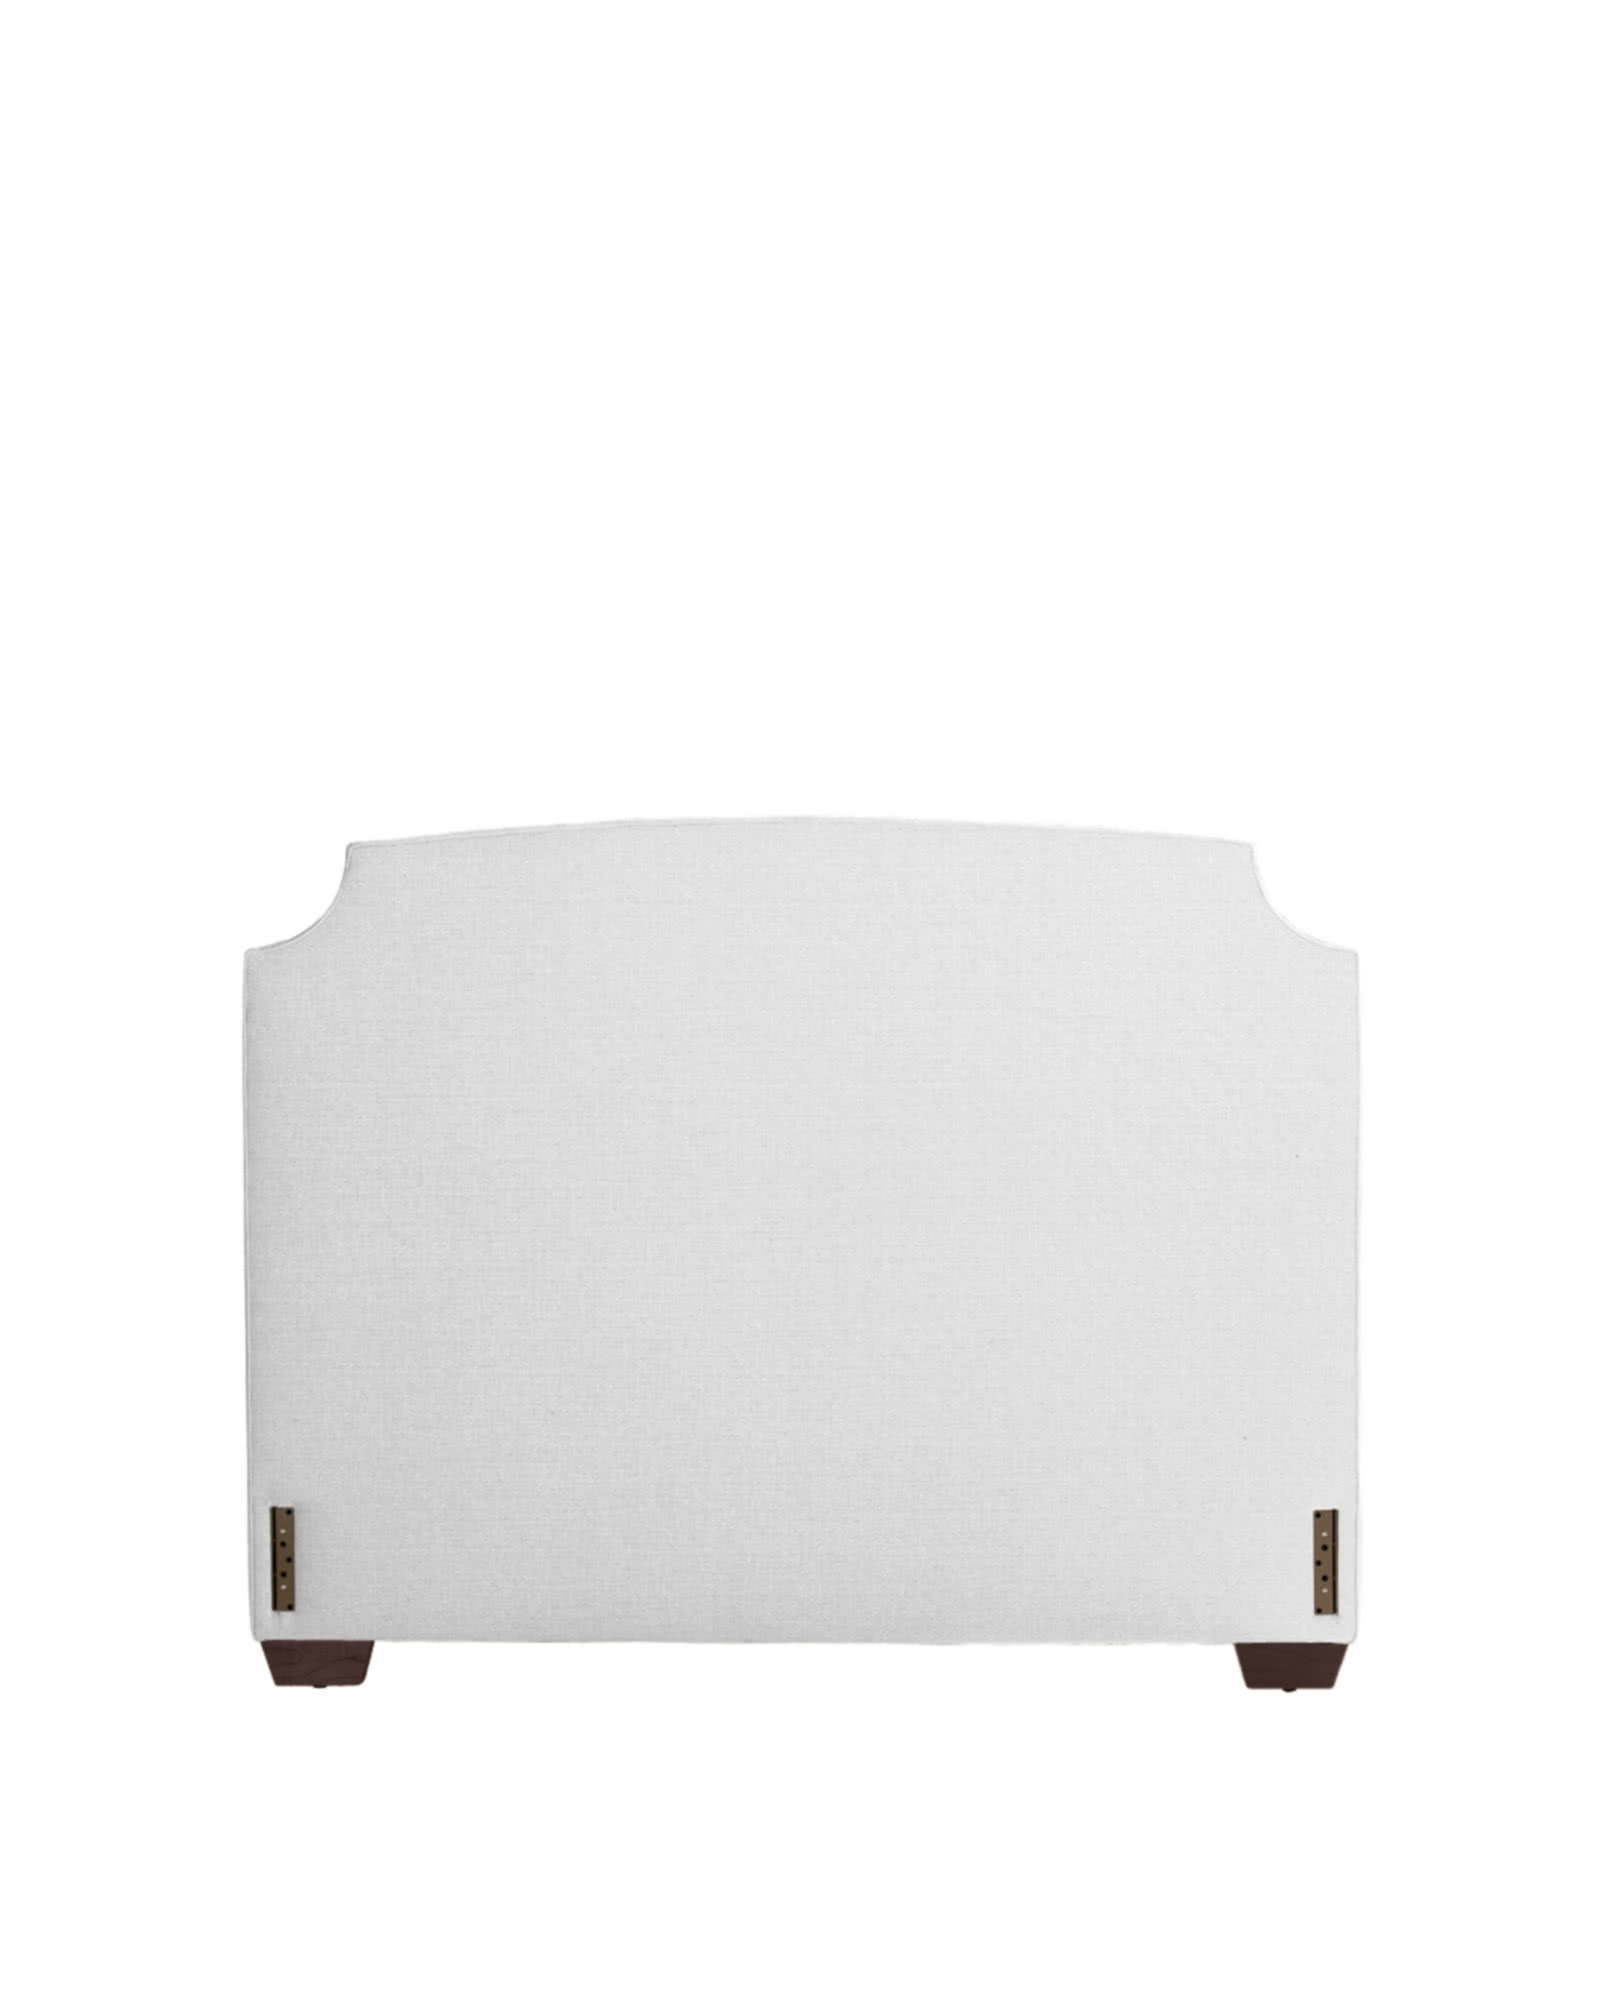 Fillmore Headboard,